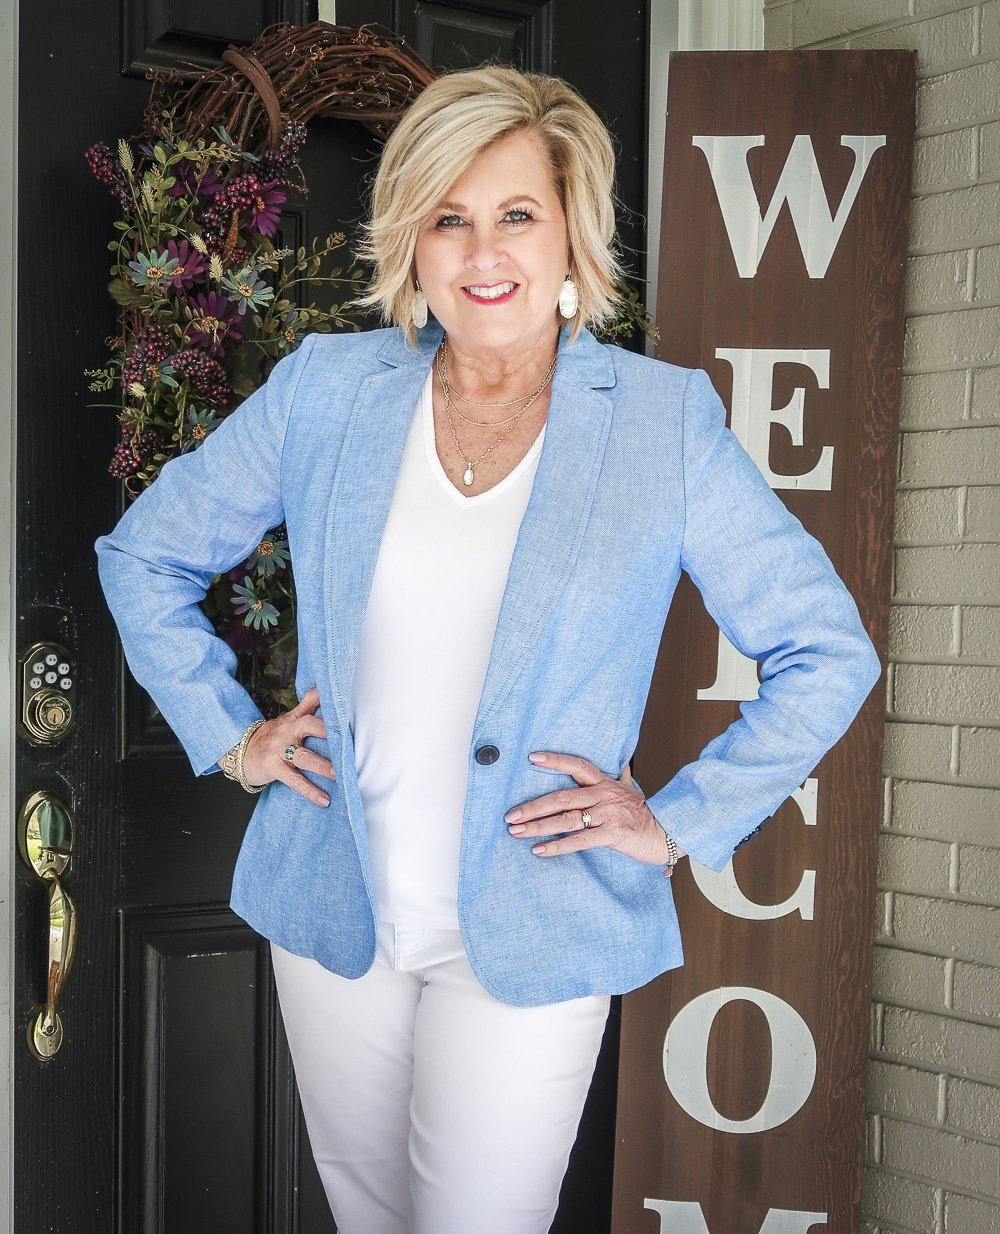 Fashion Blogger 50 Is Not Old is wearing an all white outfit with a blue linen blazer from Talbots and gold jewelry from Kendra Scott